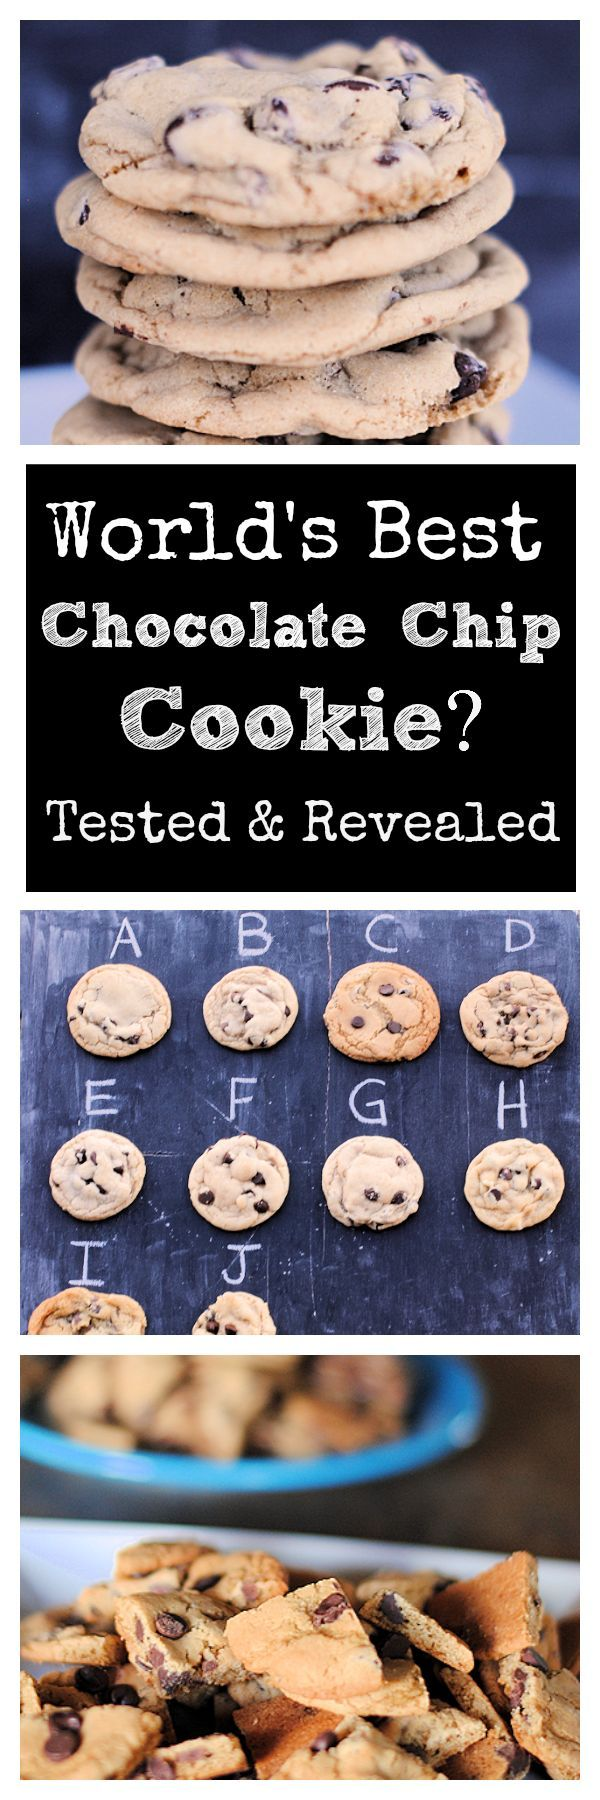 10 Recipes that Claim to be the Best Chocolate Chip Cookies Ever. Chocolate cookie recipes.